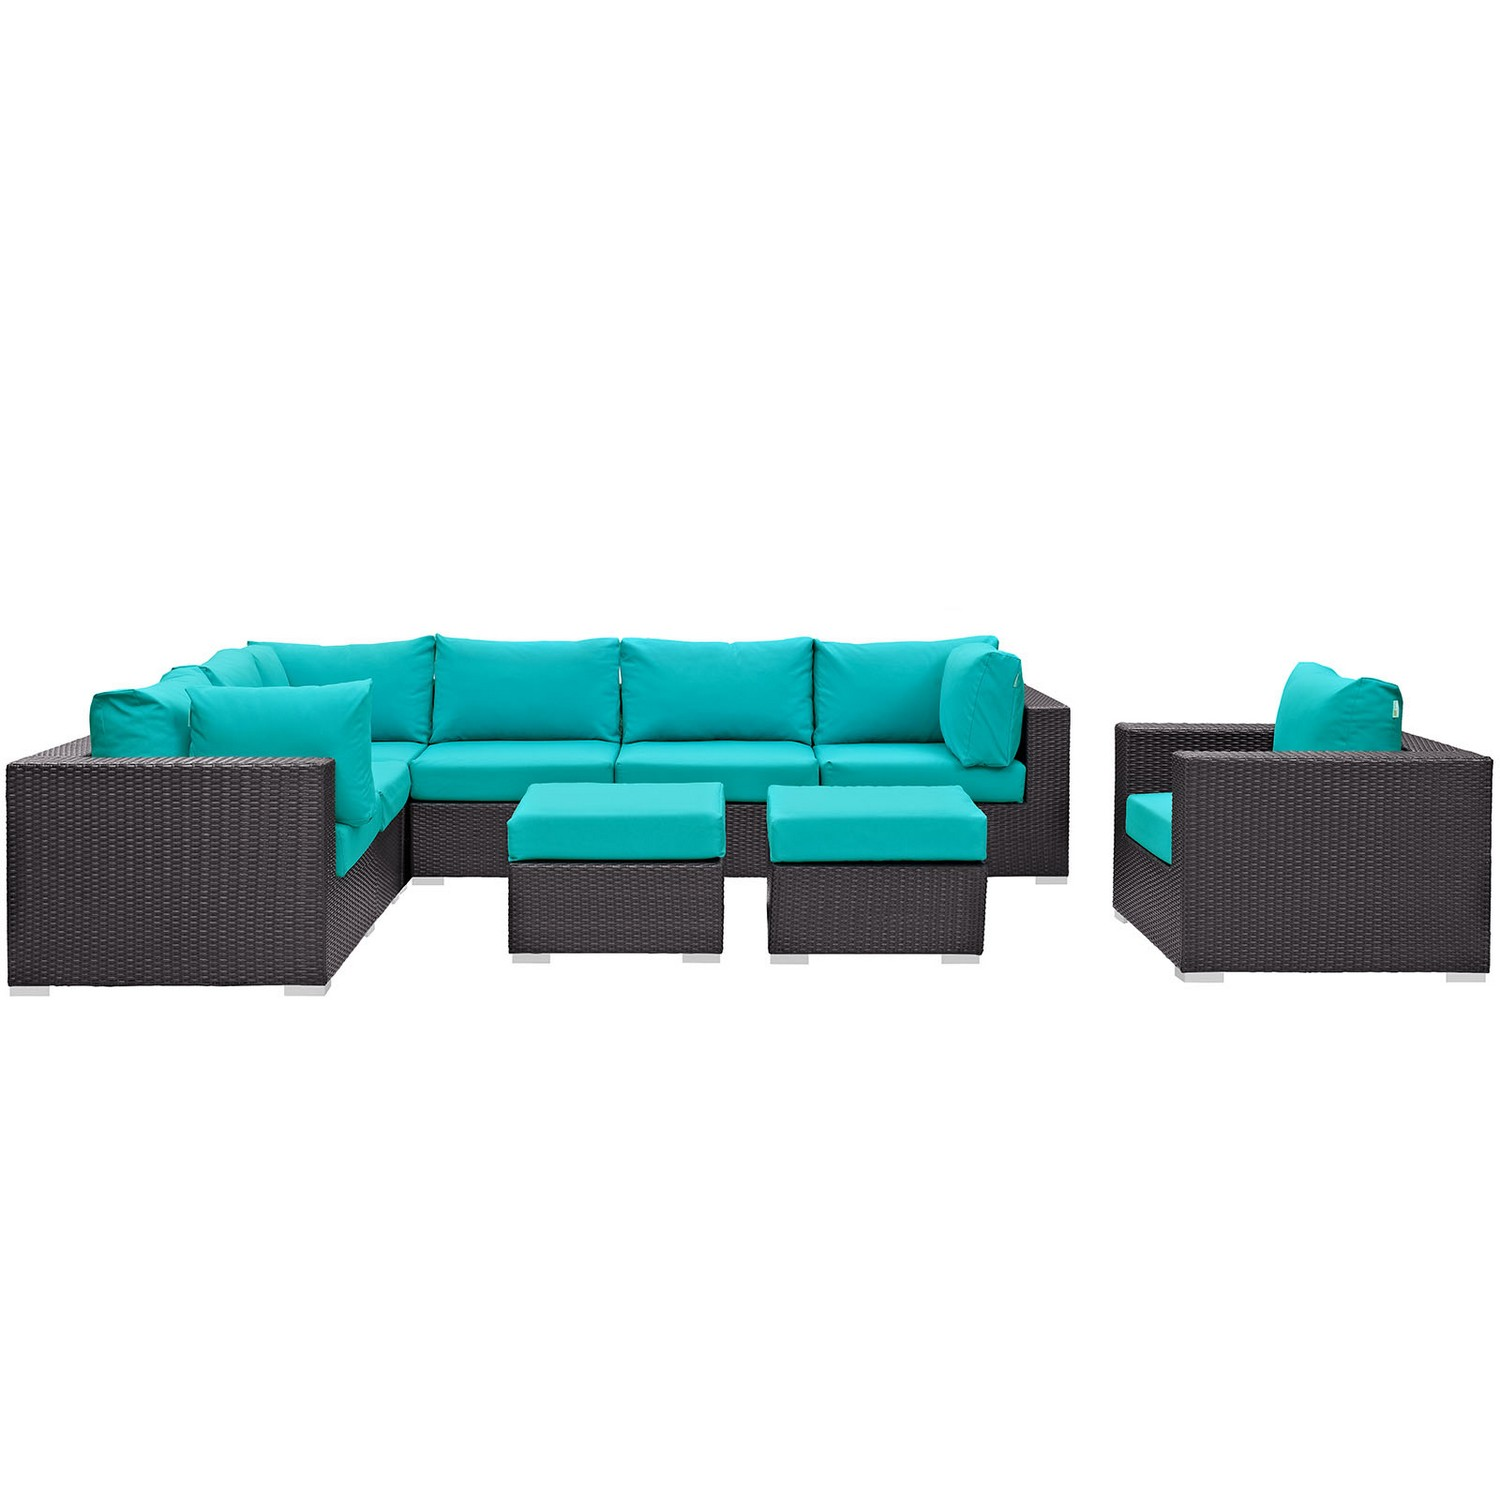 Modway Convene 9 Piece Outdoor Patio Sectional Set - Espresso Turquoise